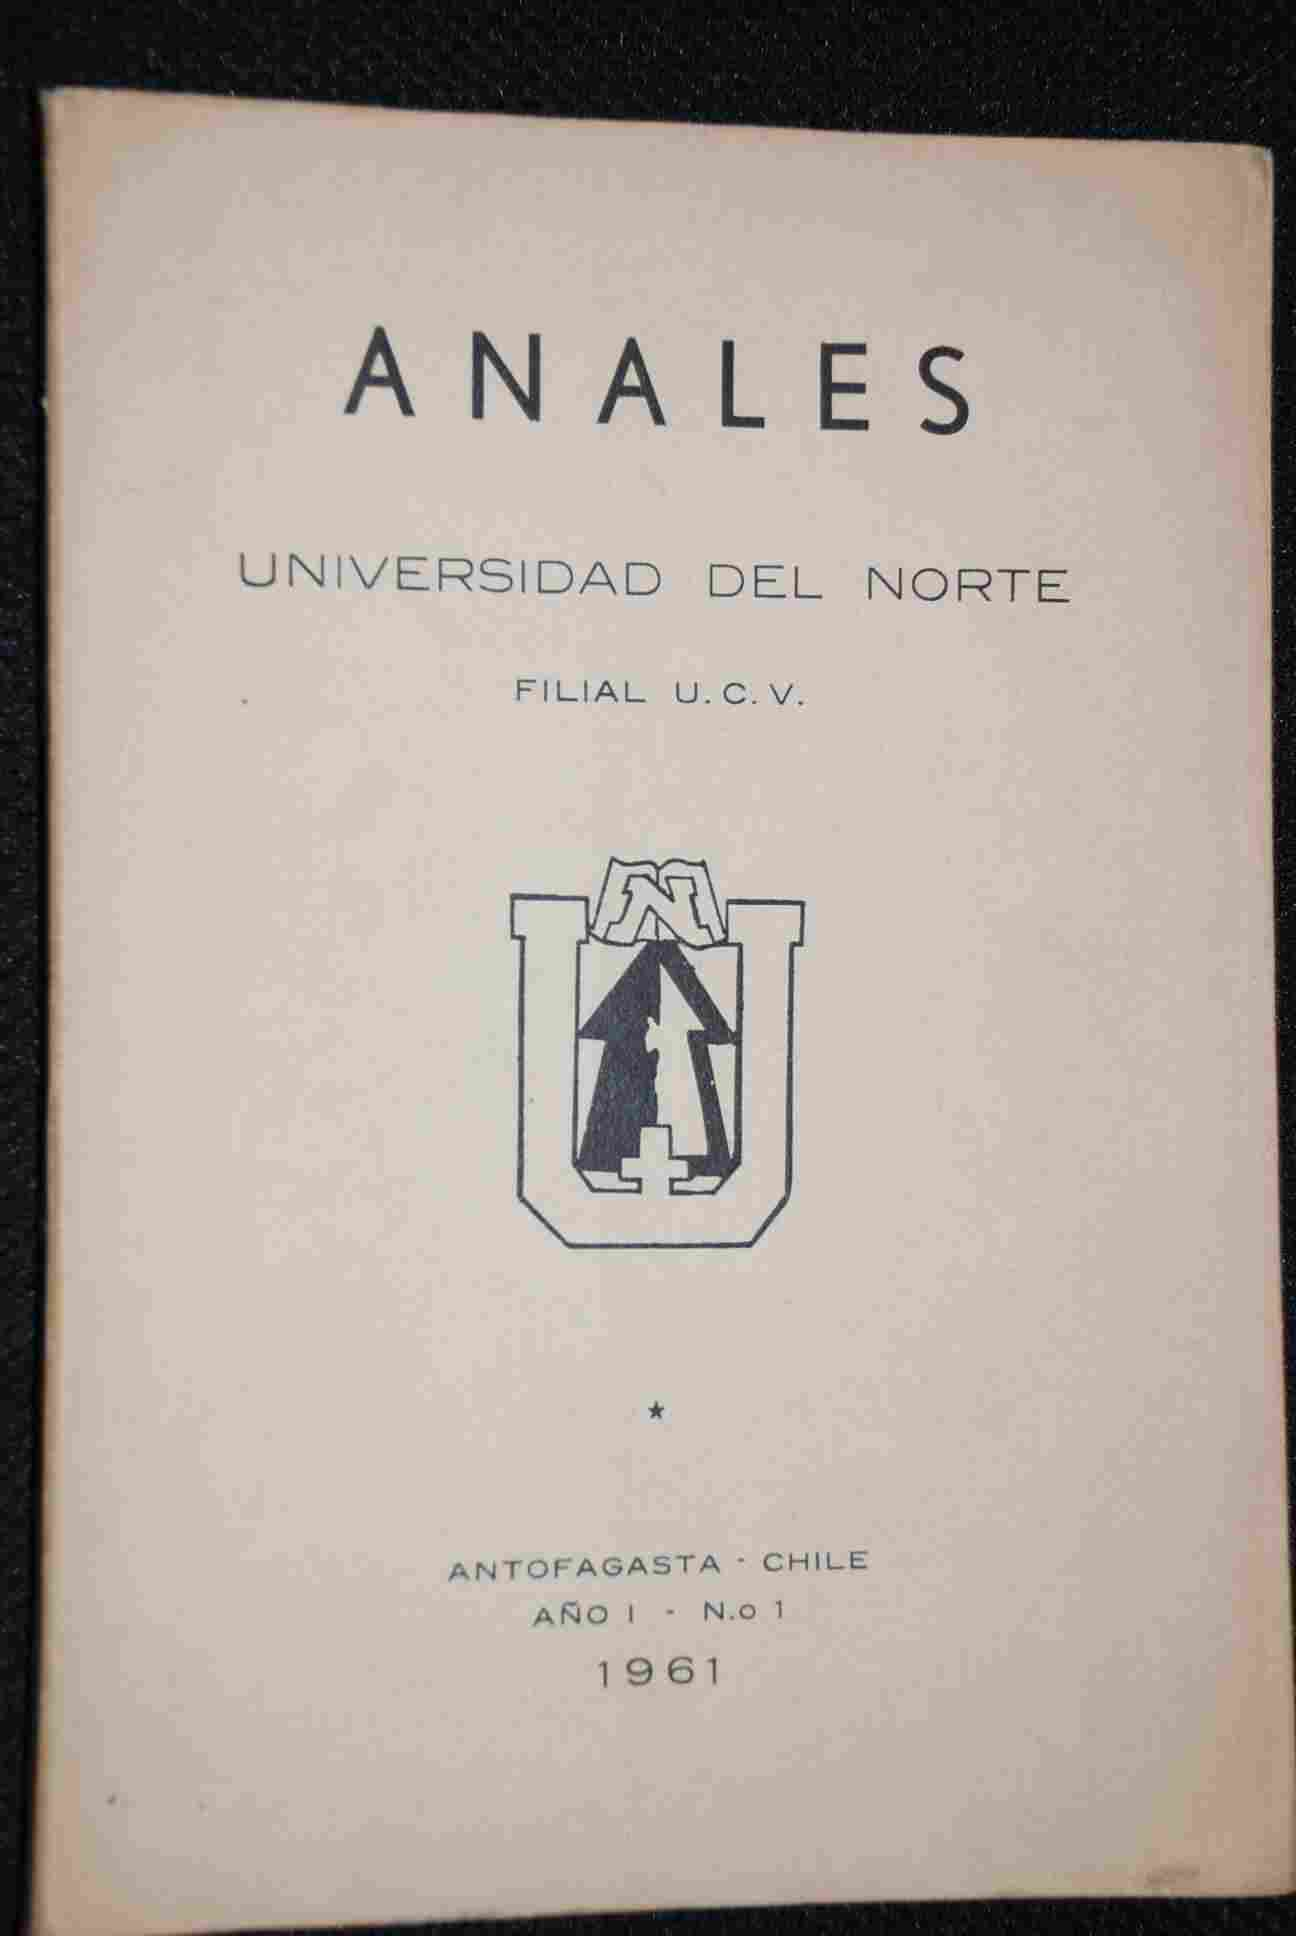 Anales Universidad del Norte